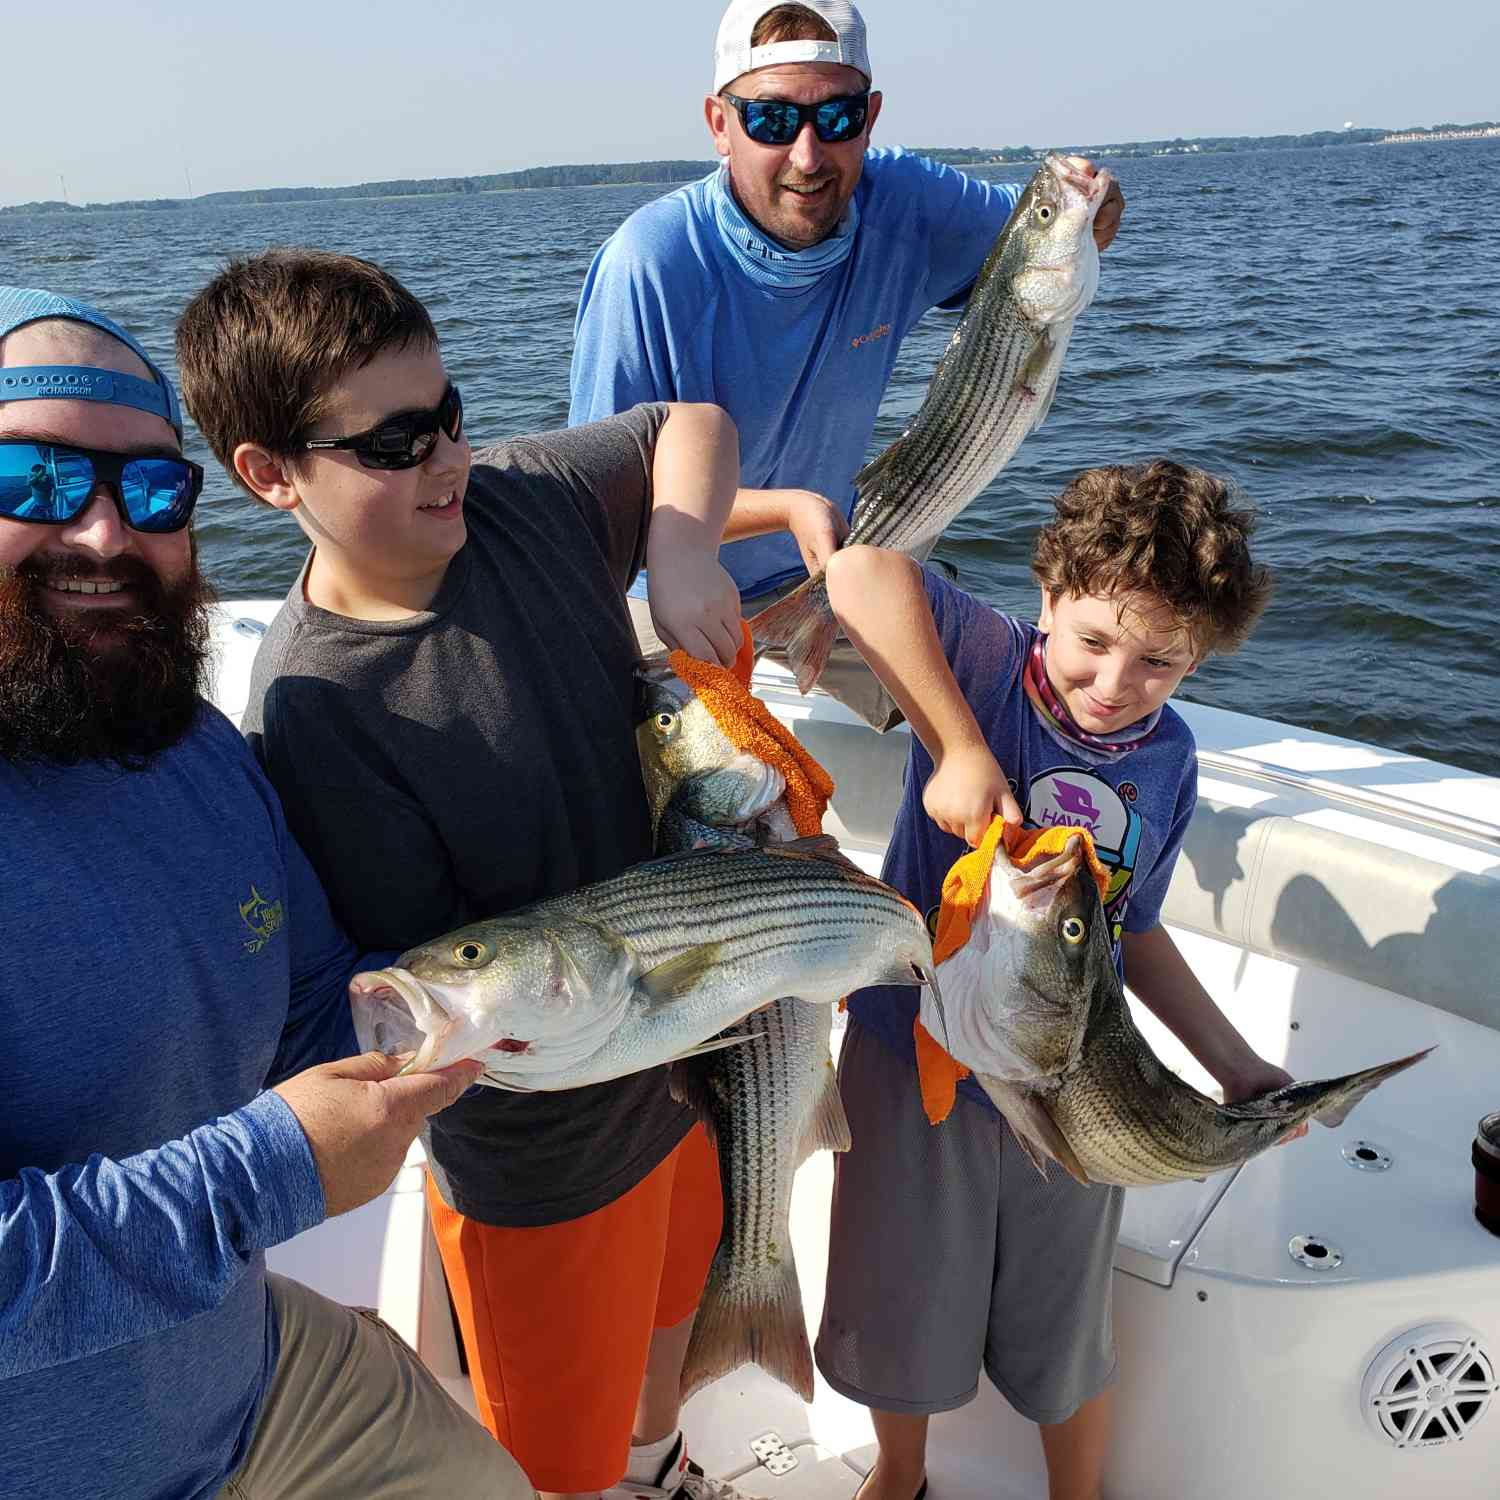 Title: Rockfishing - On board their Sportsman Open 252 Center Console - Location: Kent island md. Participating in the Photo Contest #SportsmanJuly2020